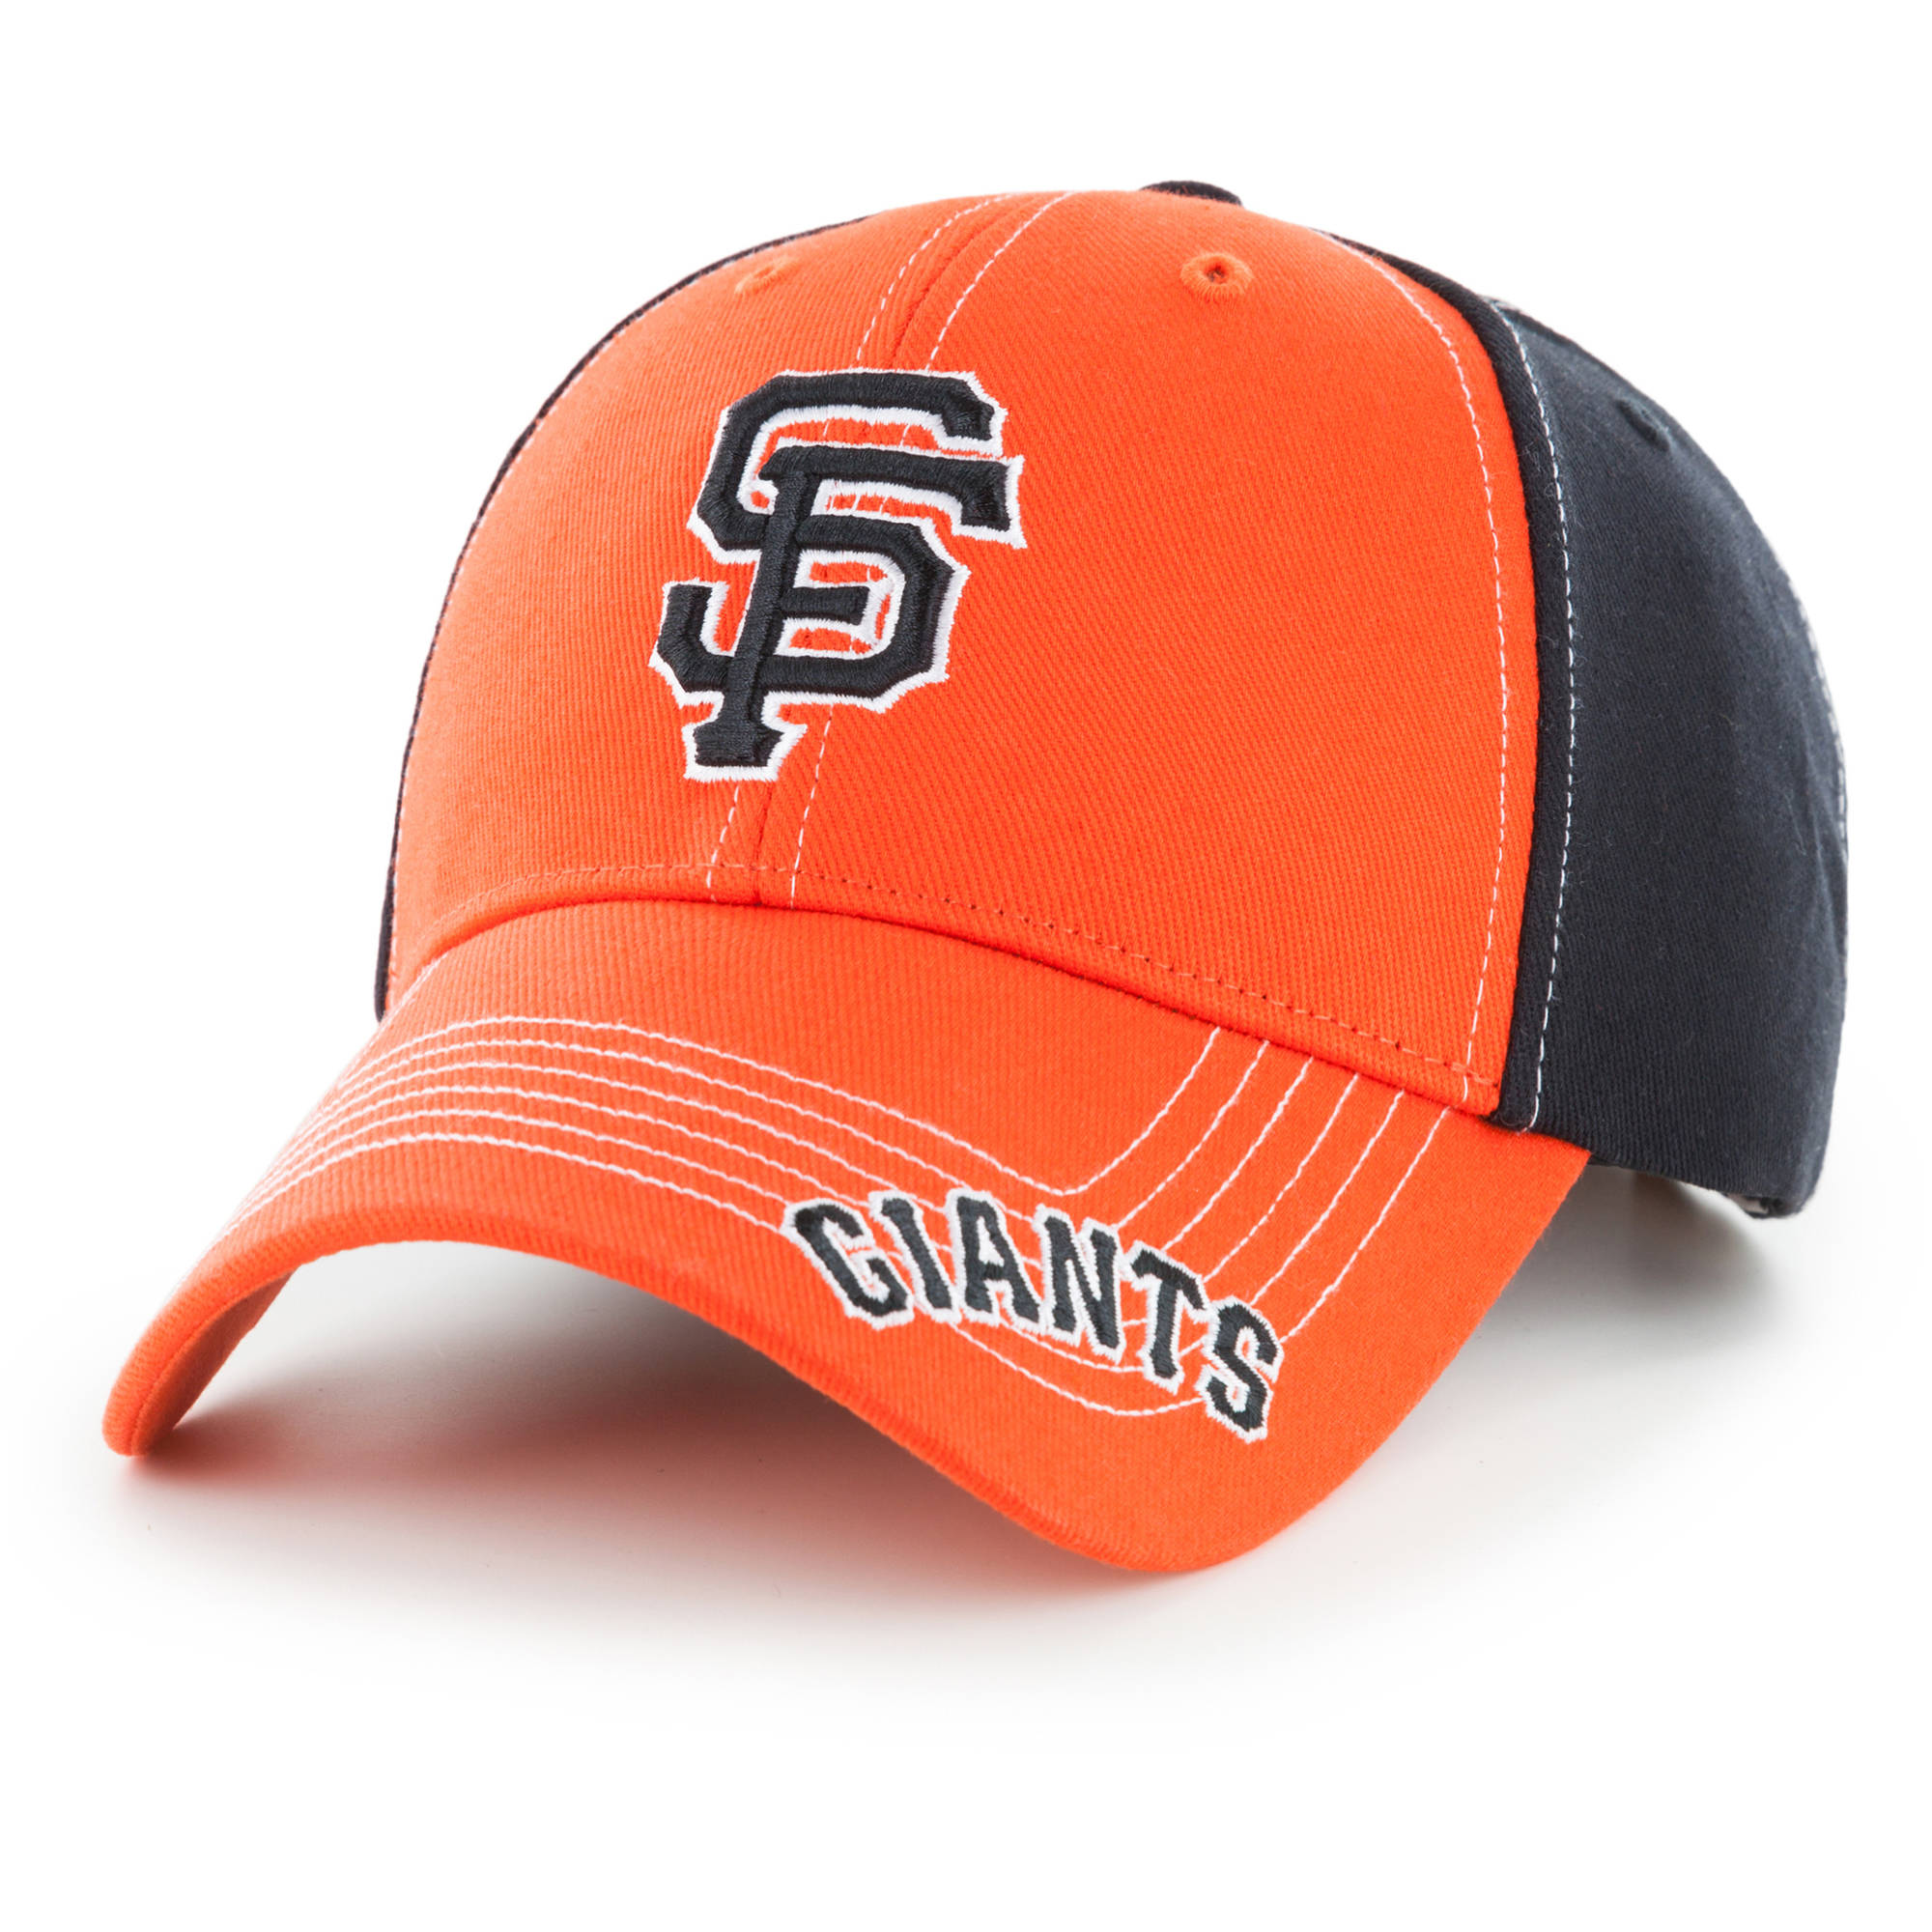 10d72bd602497 San Francisco Giants Team Shop - Walmart.com